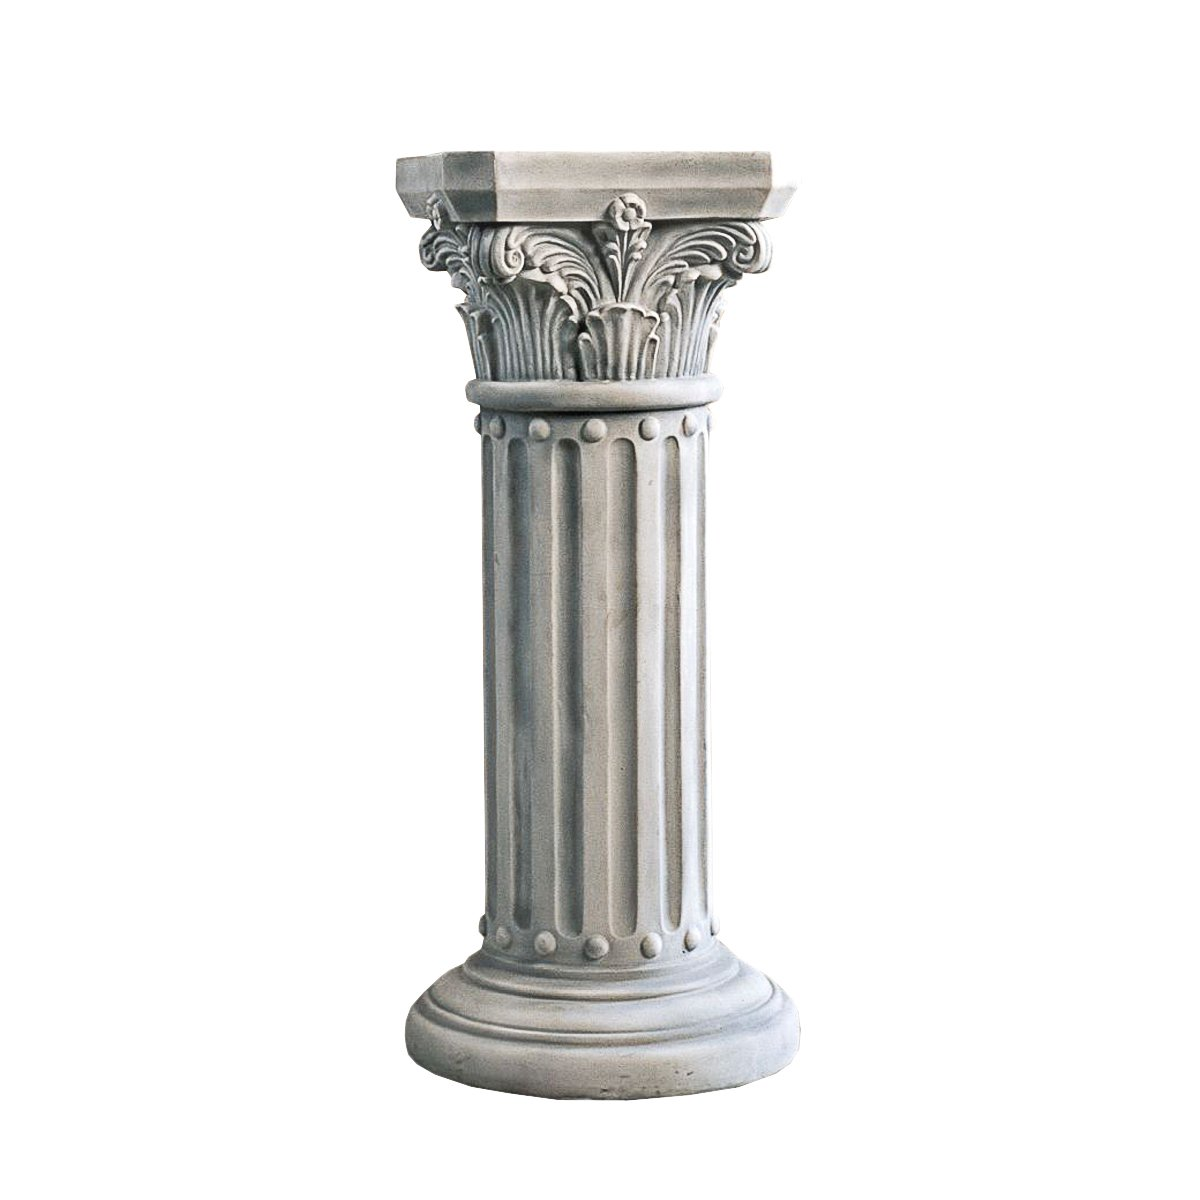 Design Toscano The Athena Corinthian Pedestal by Design Toscano